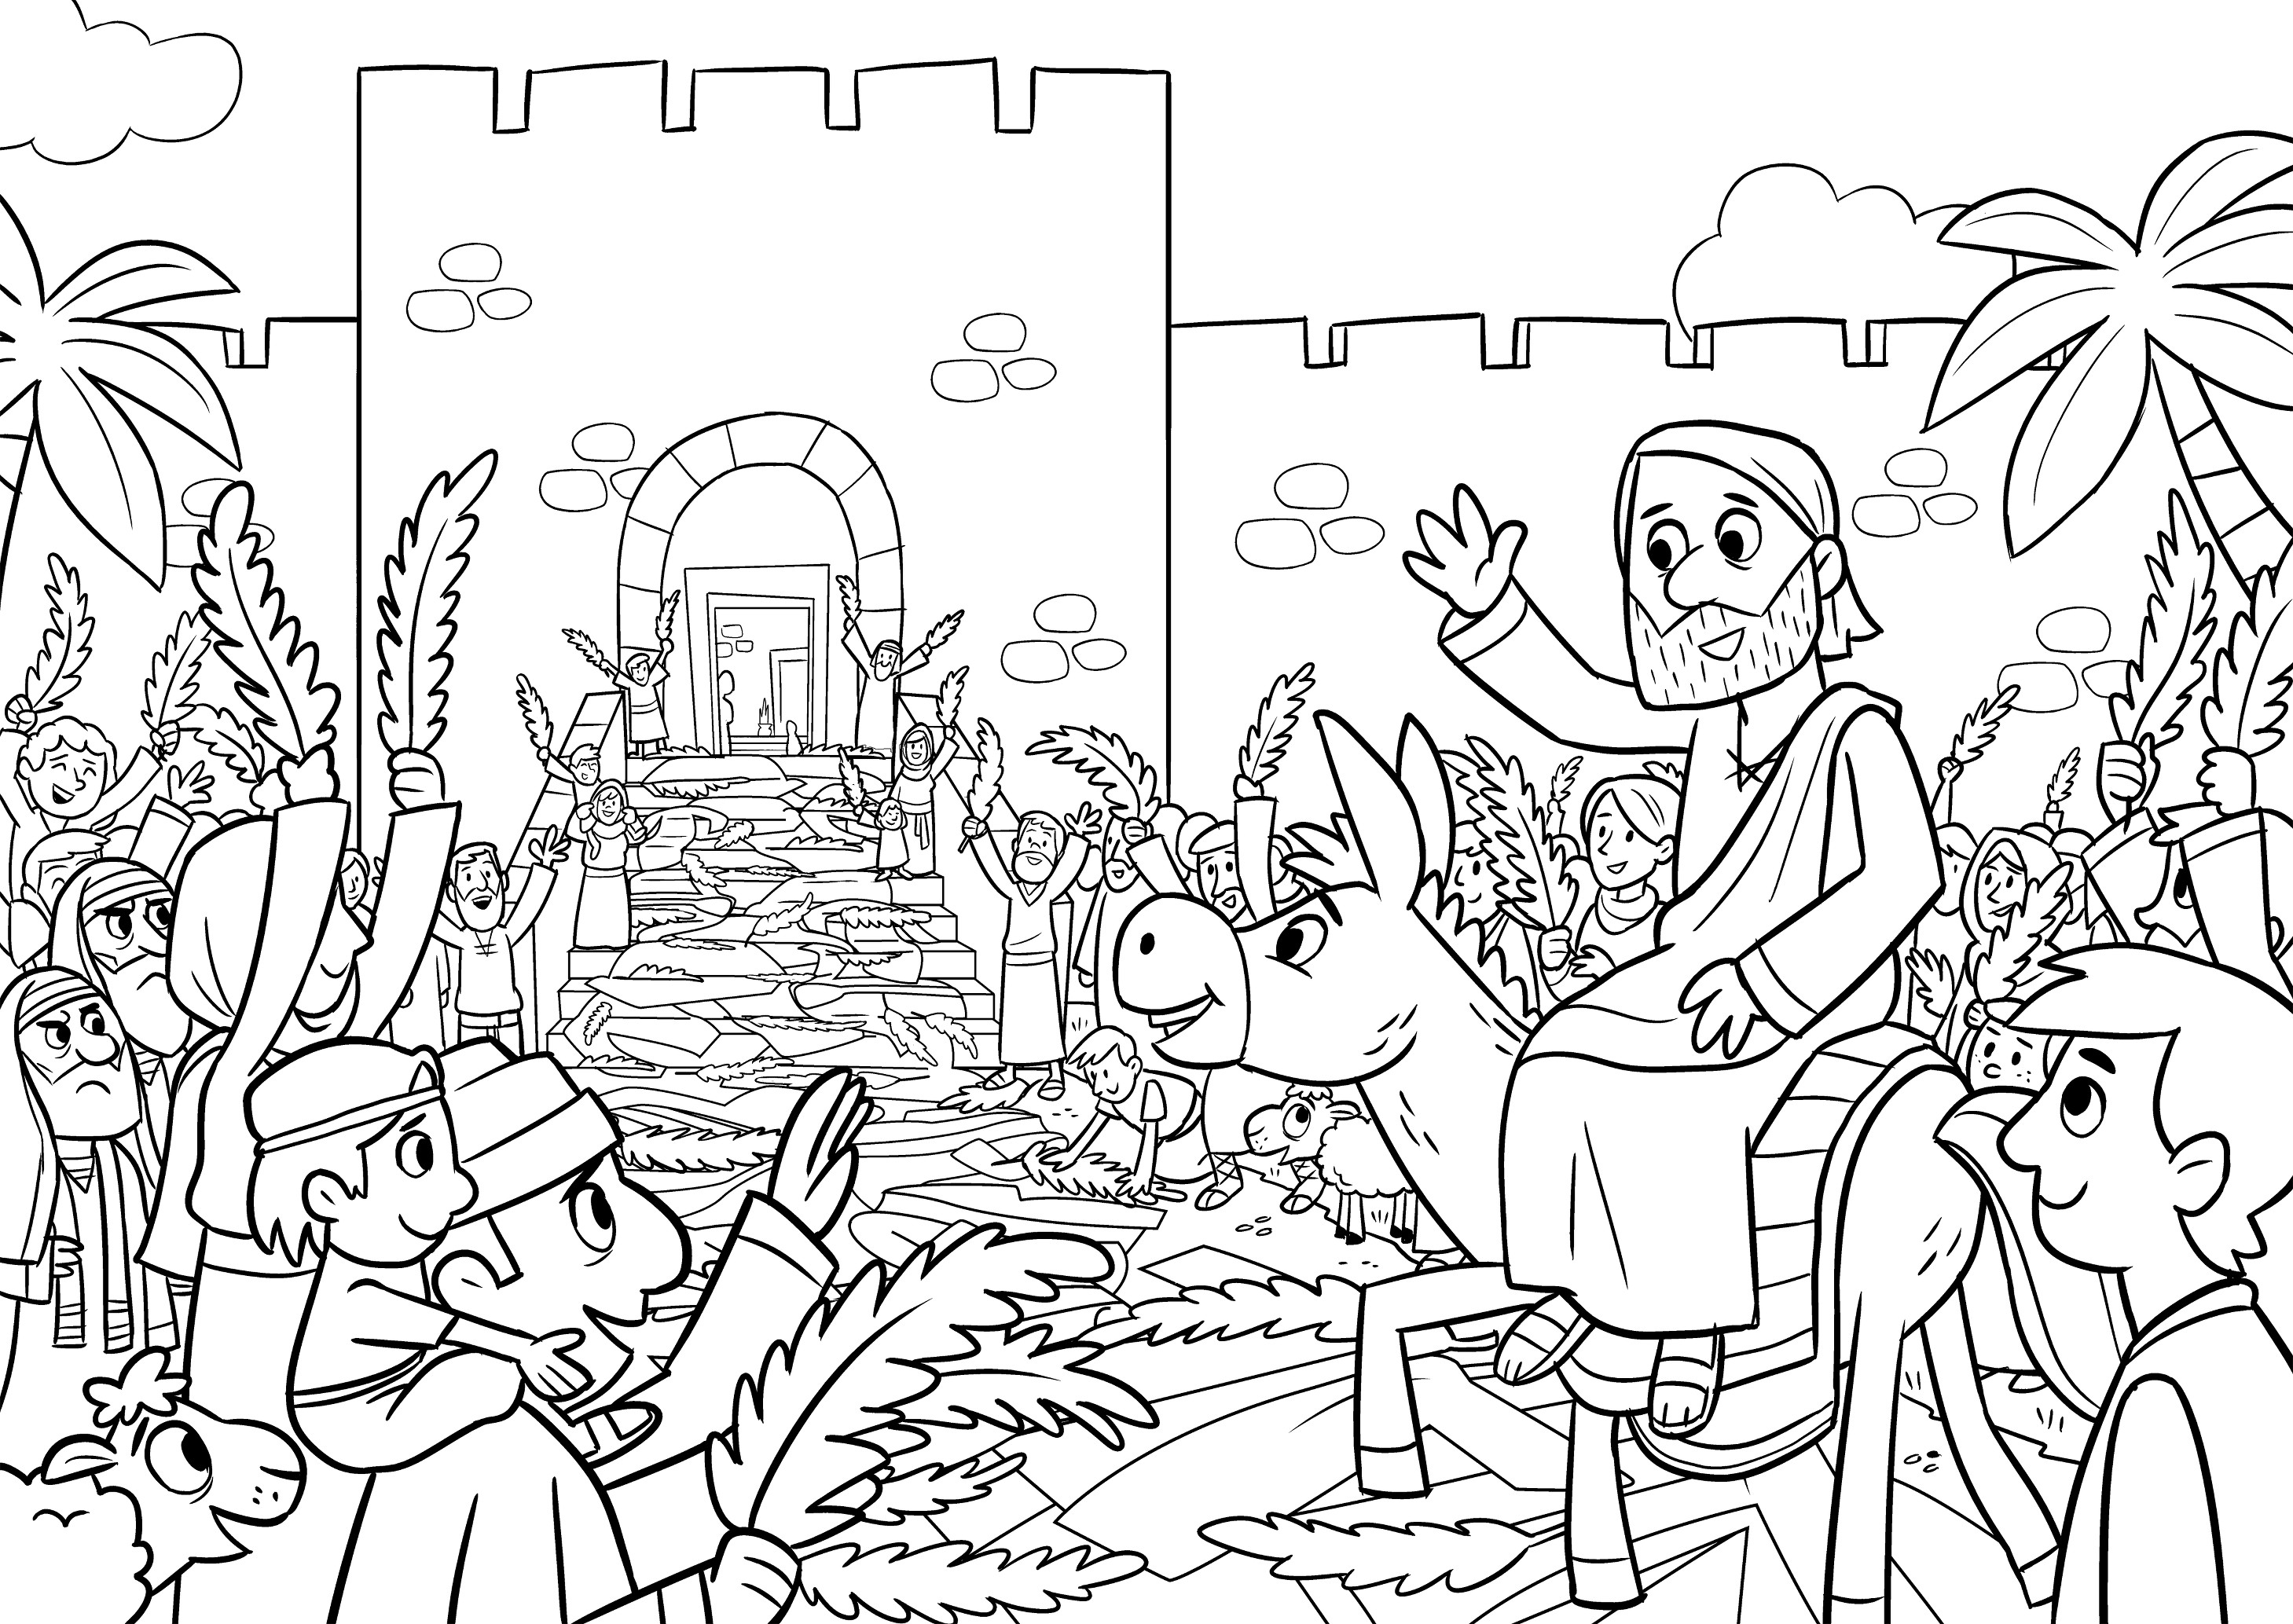 The Donkey And King Coloring Sheet